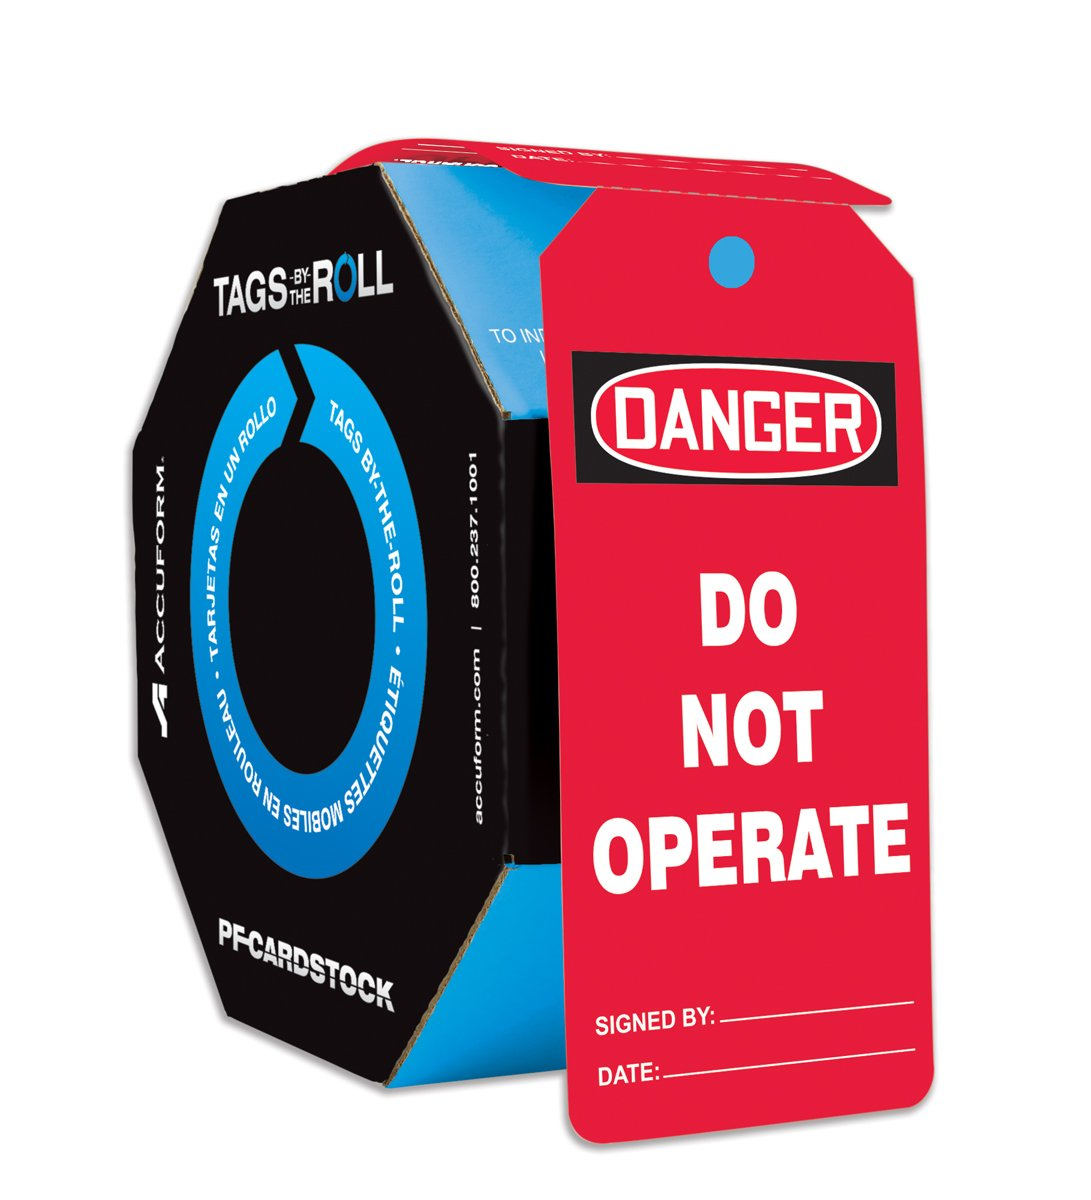 """Accuform TAR142 Tags by-The-Roll General Safety Tags, Legend""""Danger DO NOT Operate"""", 6.25"""" Length x 3"""" Width x 0.010"""" Thickness, PF-Cardstock, Black/White on Red (Pack of 250) 61xADsEyKpL._SL1200_"""